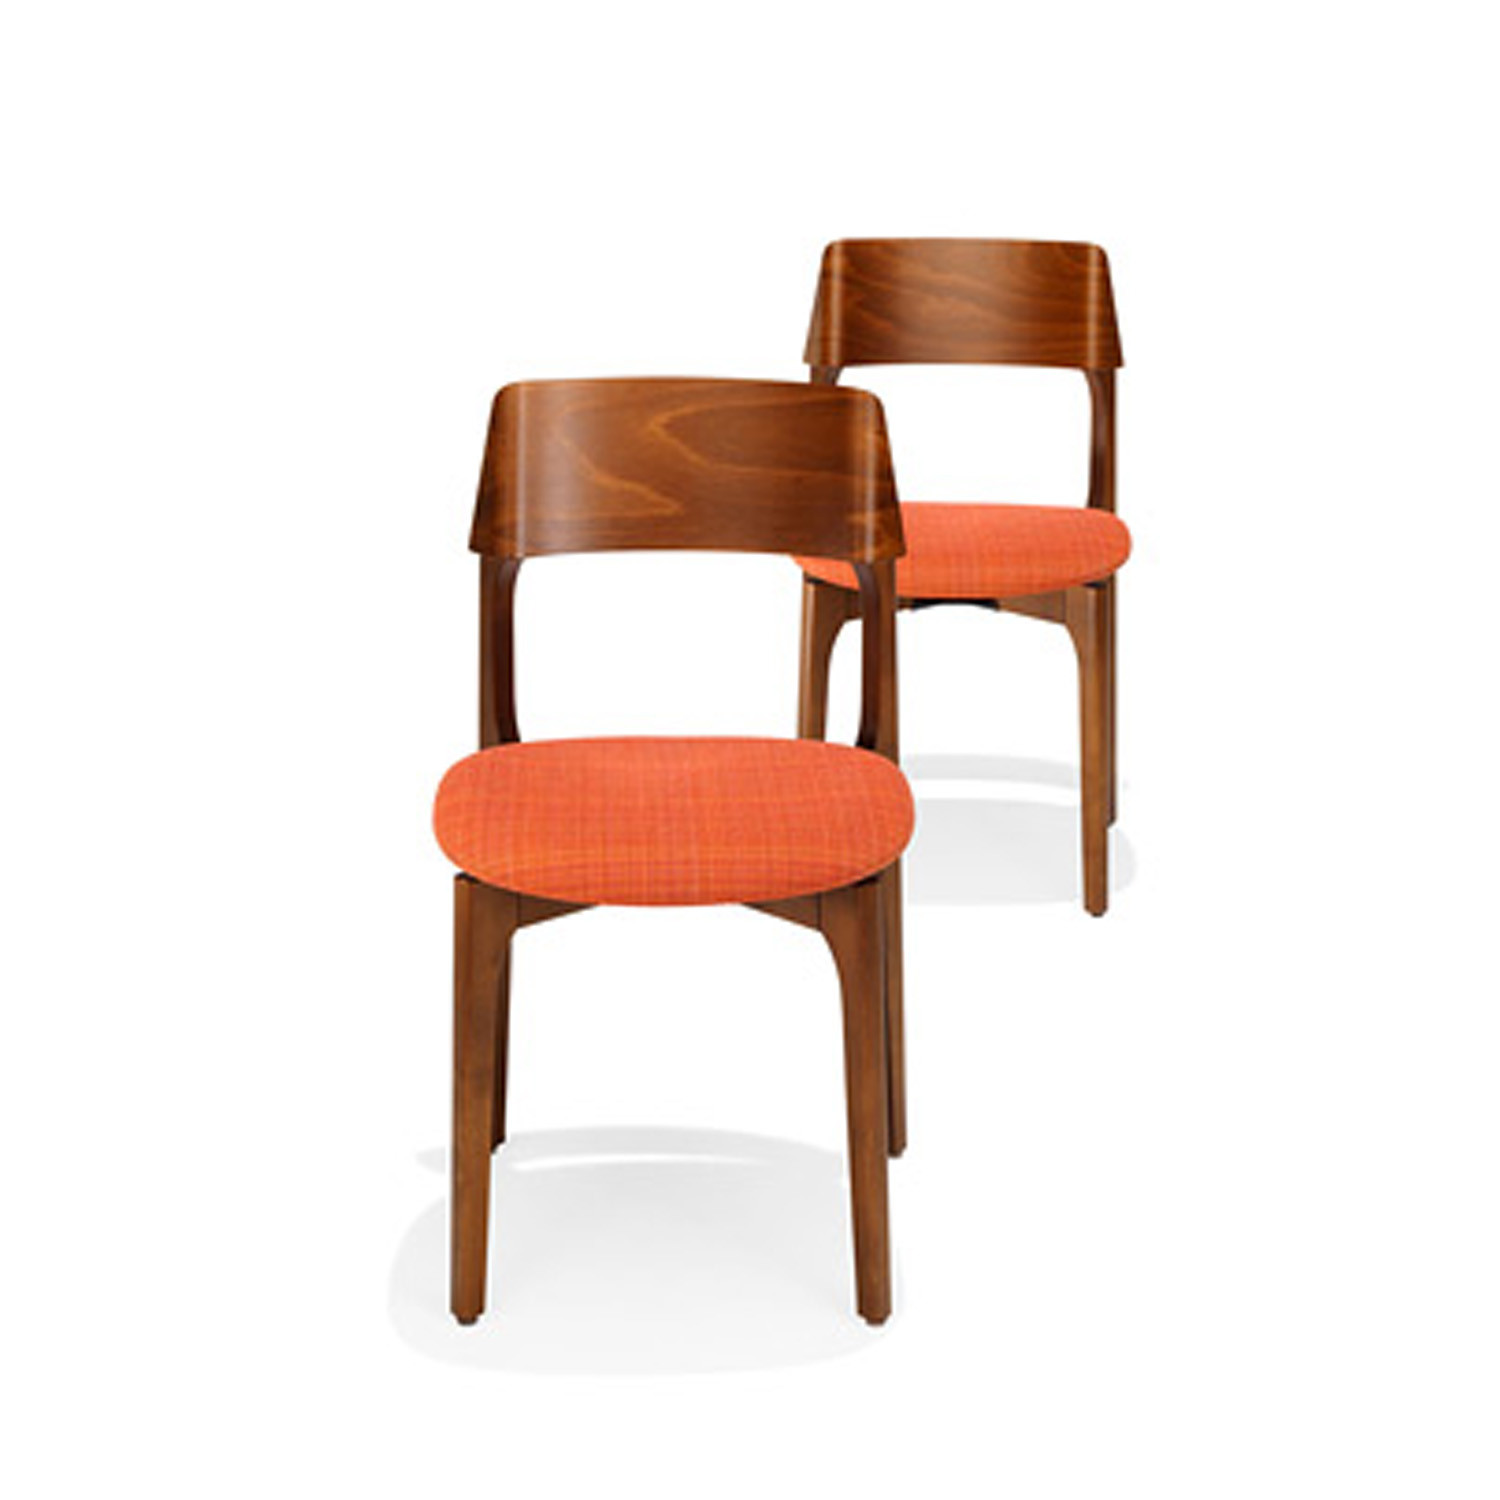 1010 Bina Dining Chairs